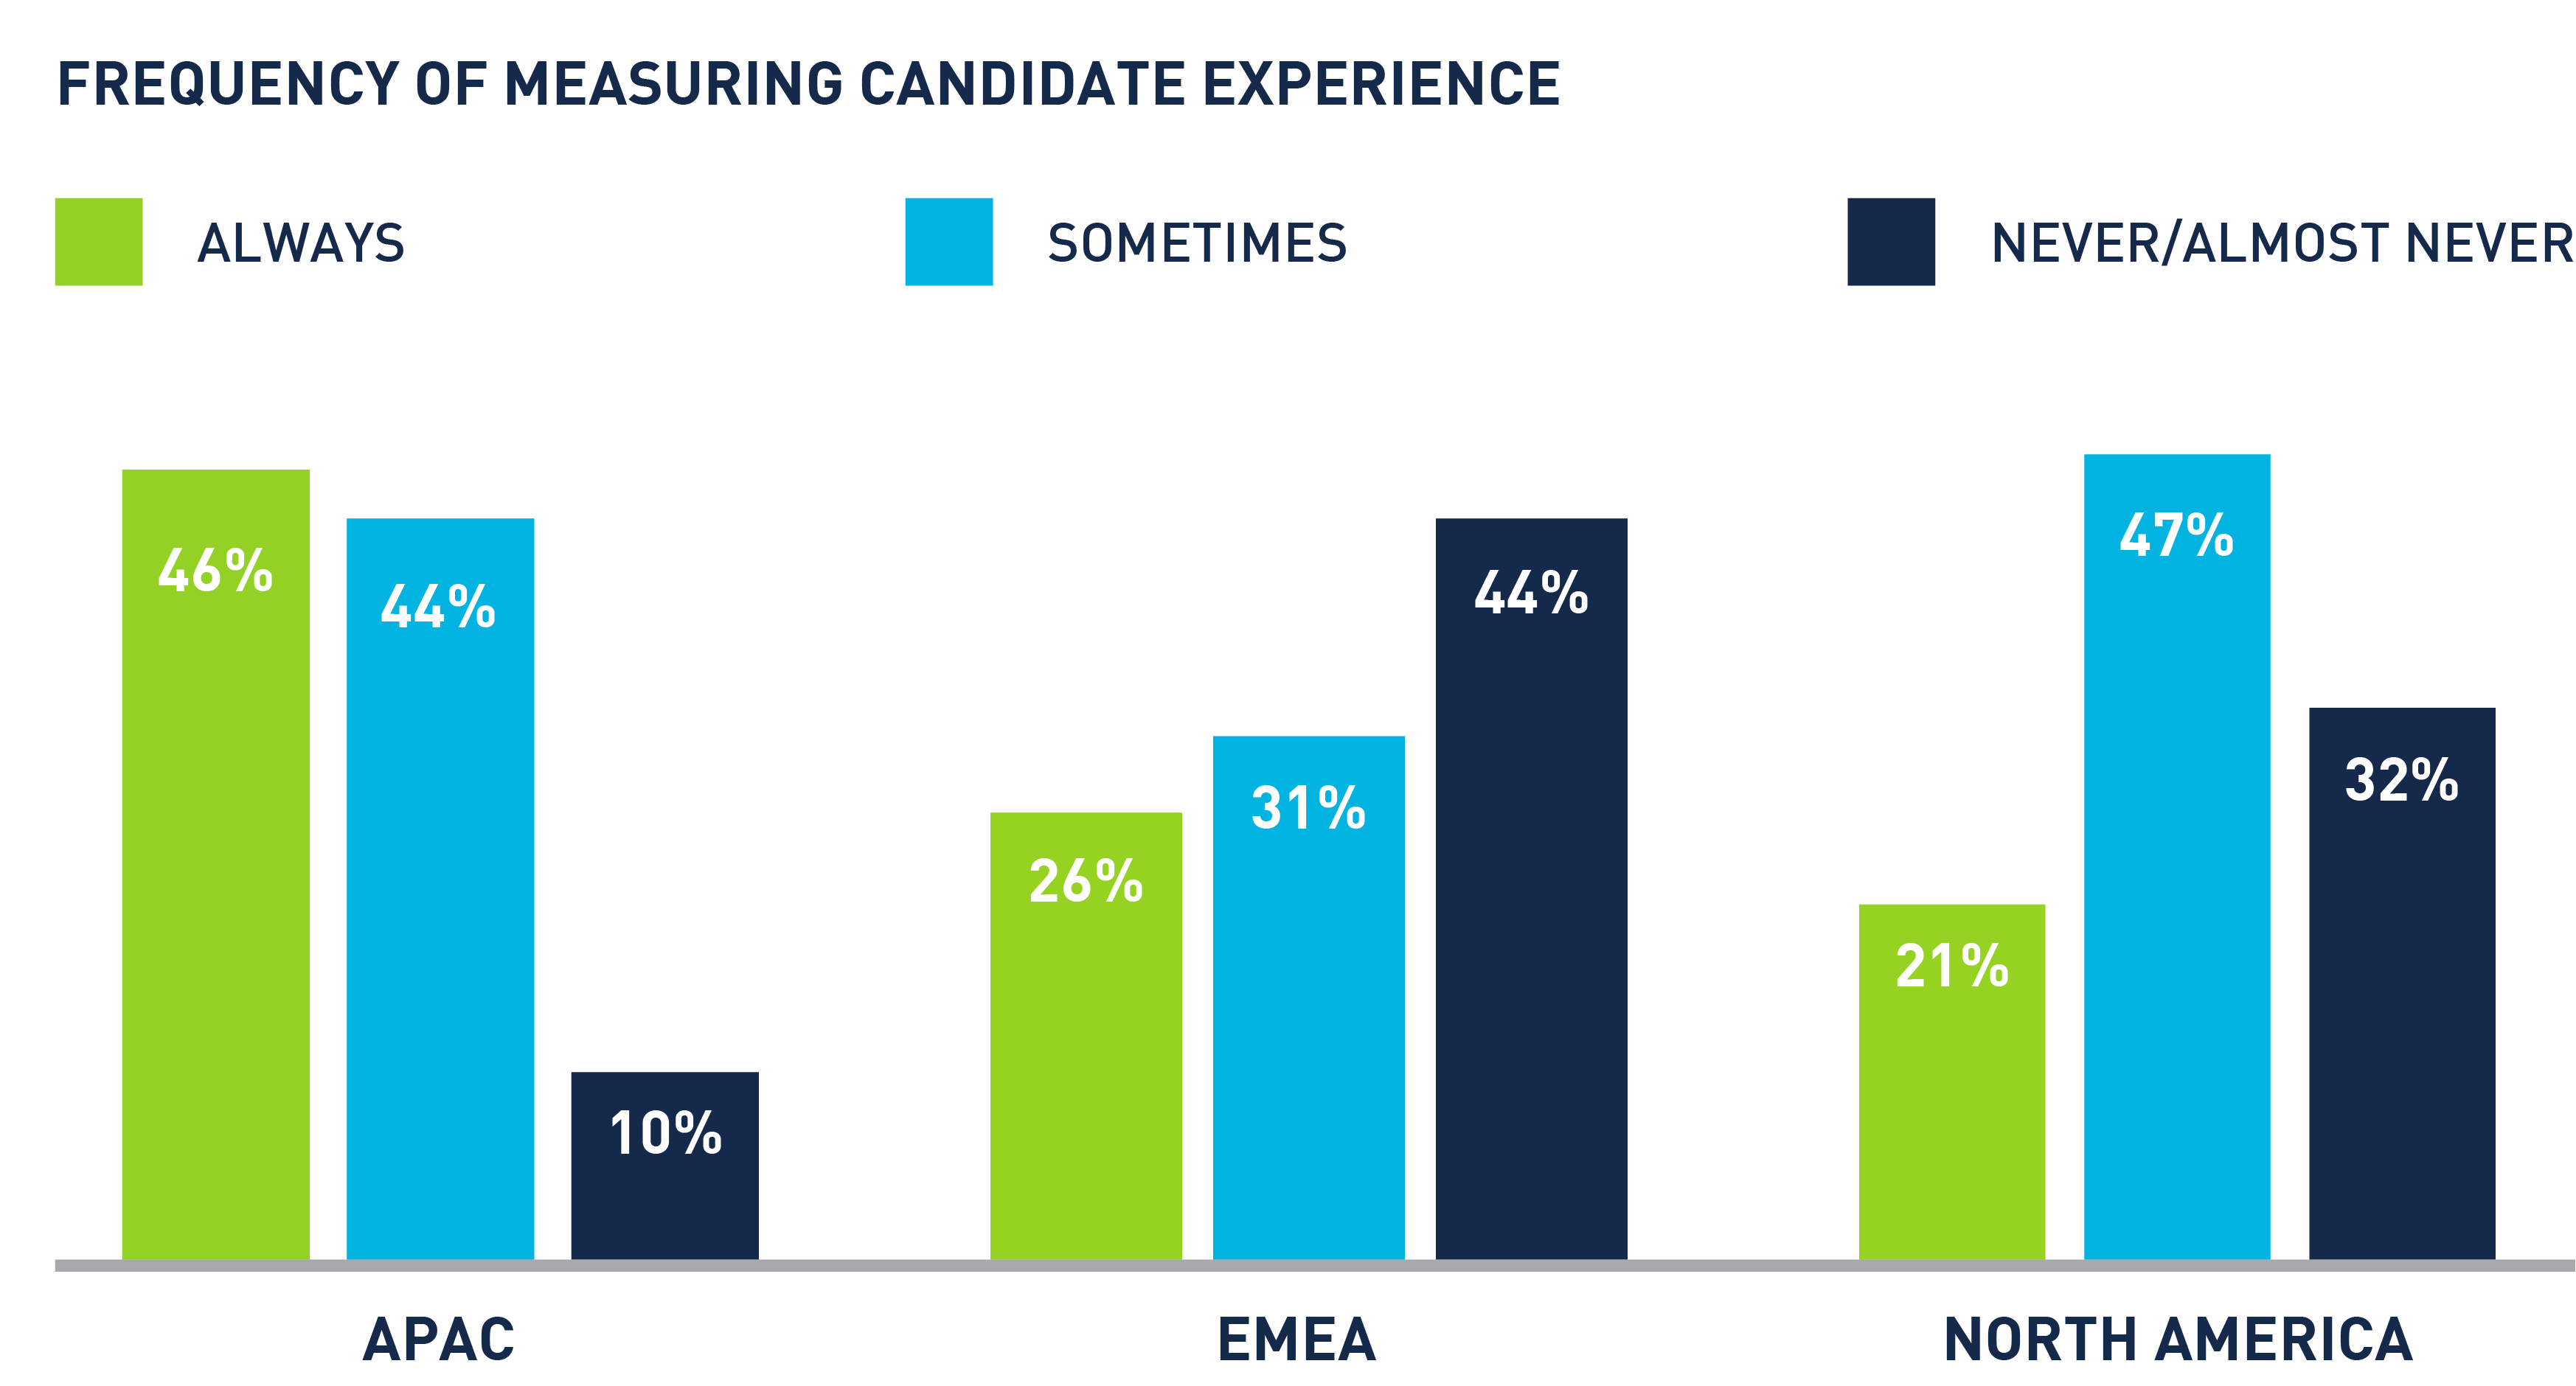 frequency of measuring candidate experience graph